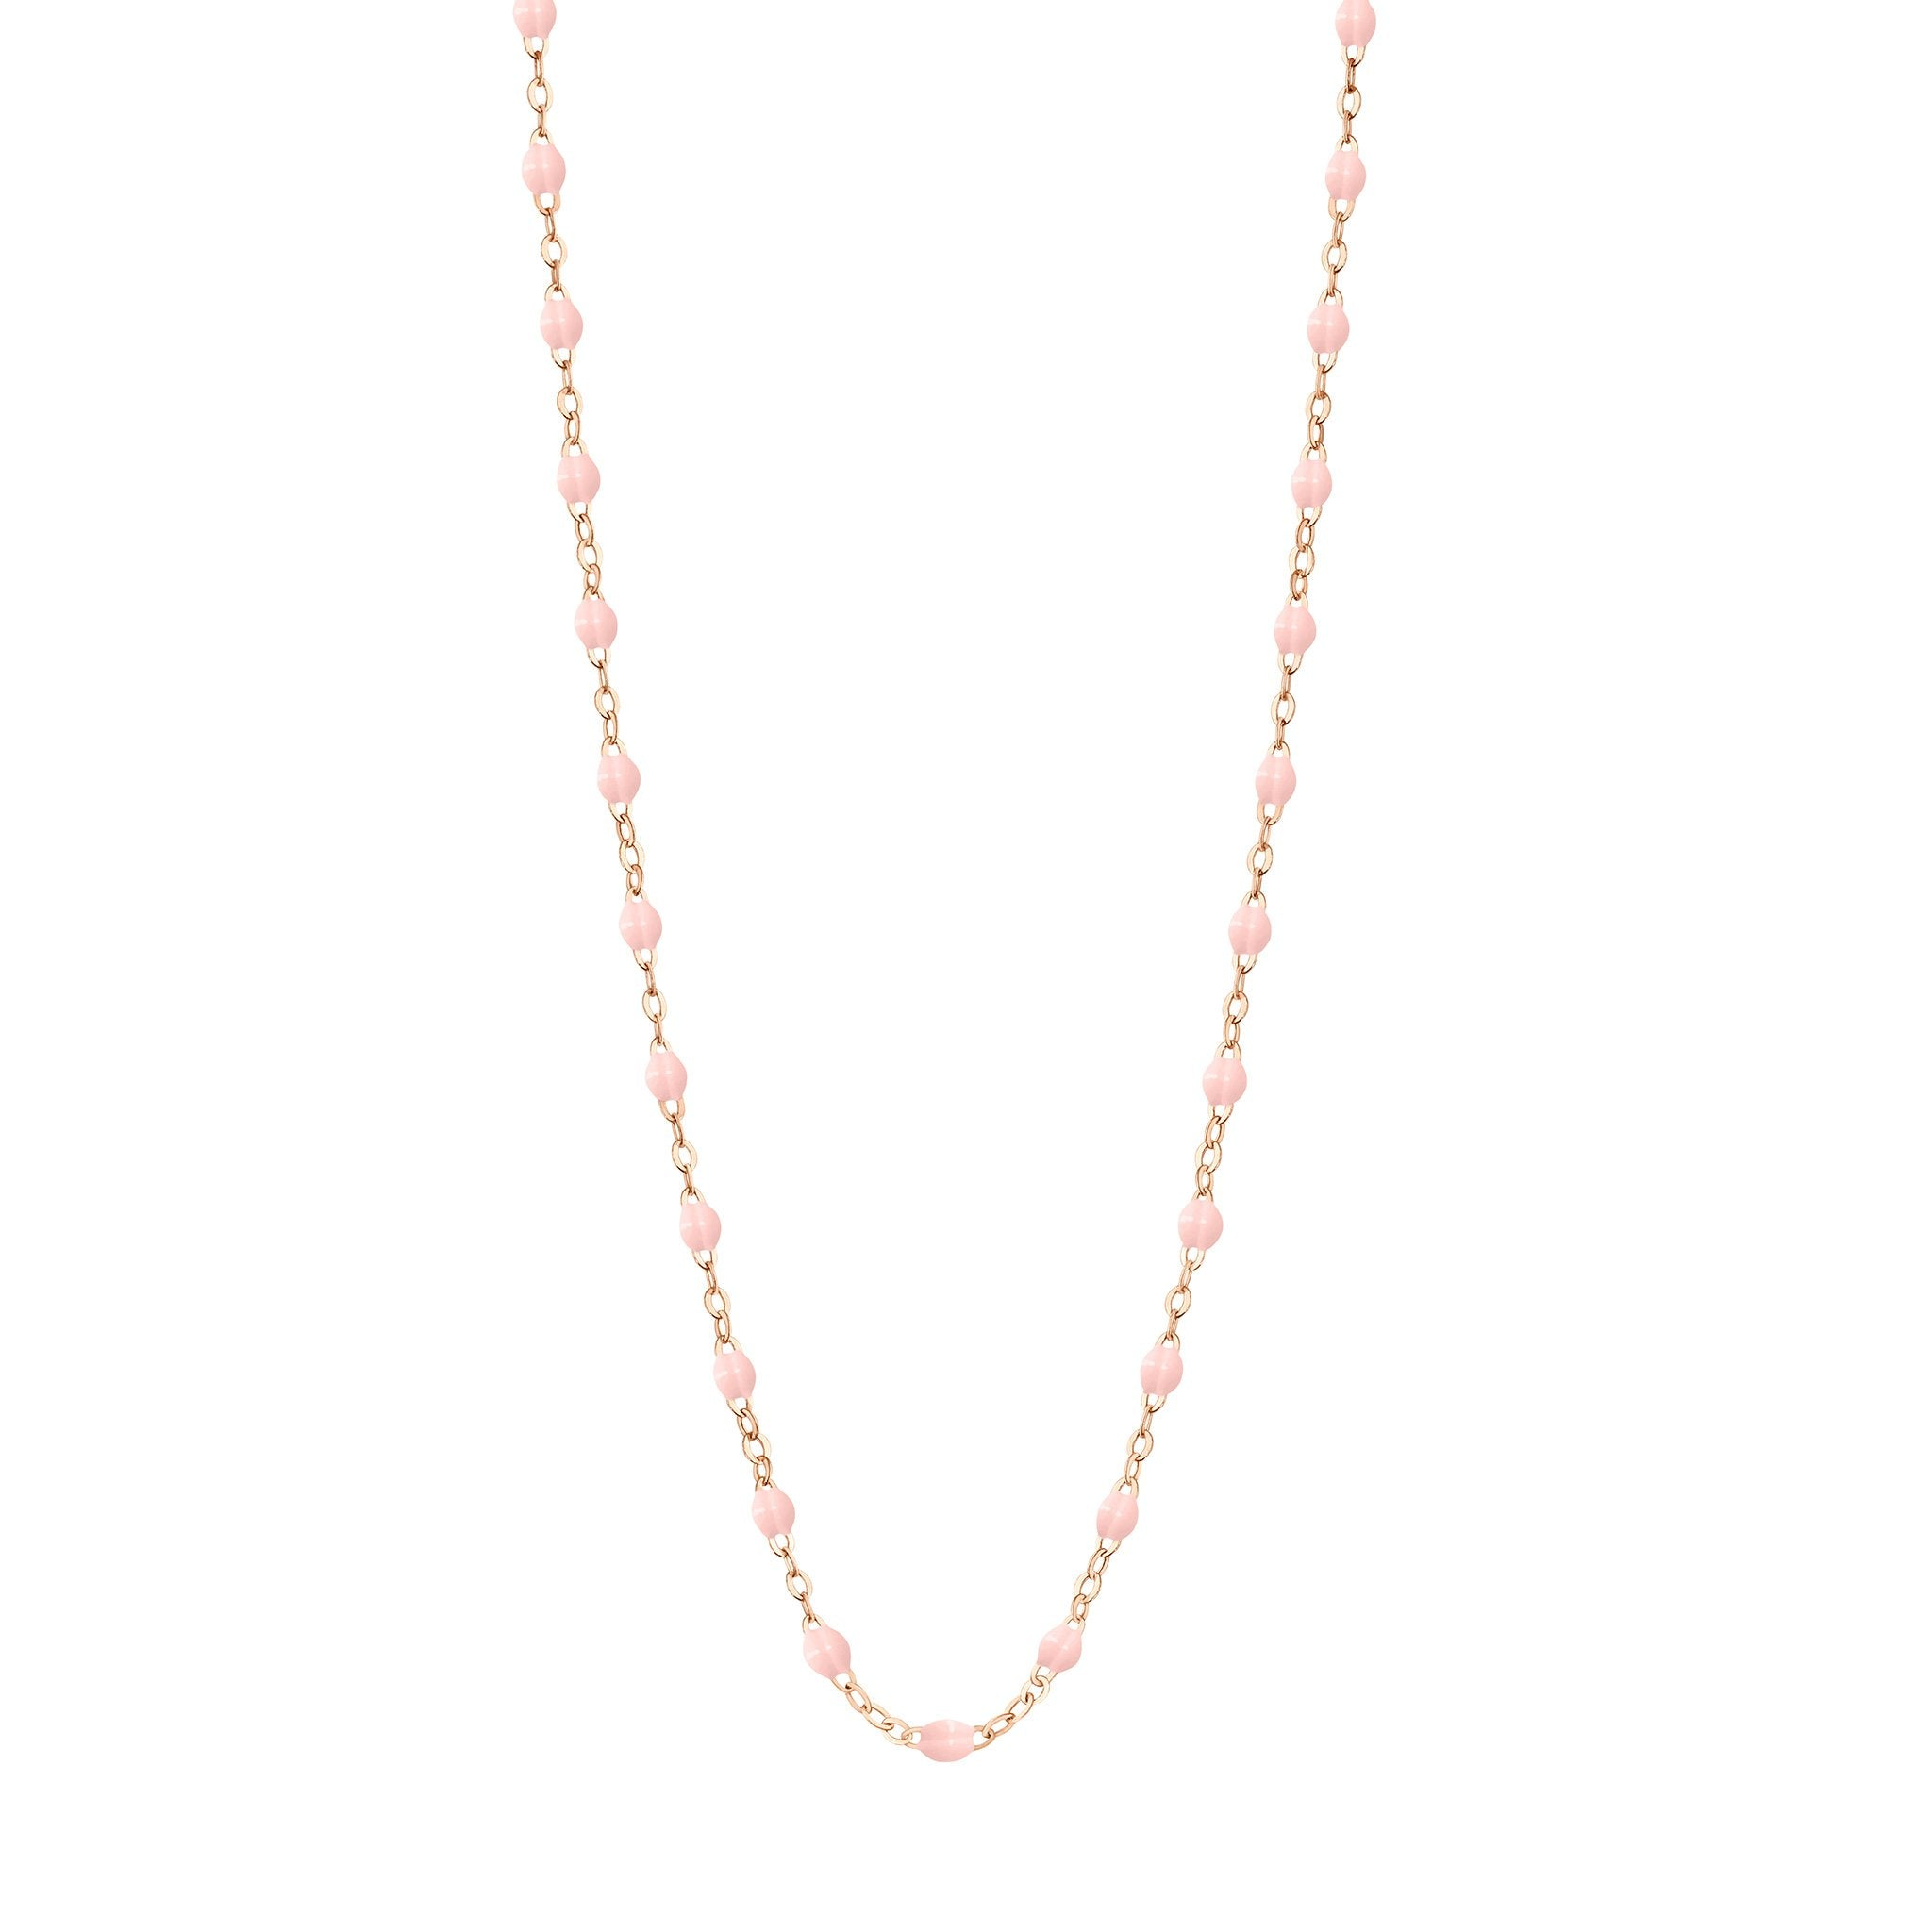 Gigi Clozeau - Classic Gigi Baby Pink necklace, Rose Gold, 19.7""